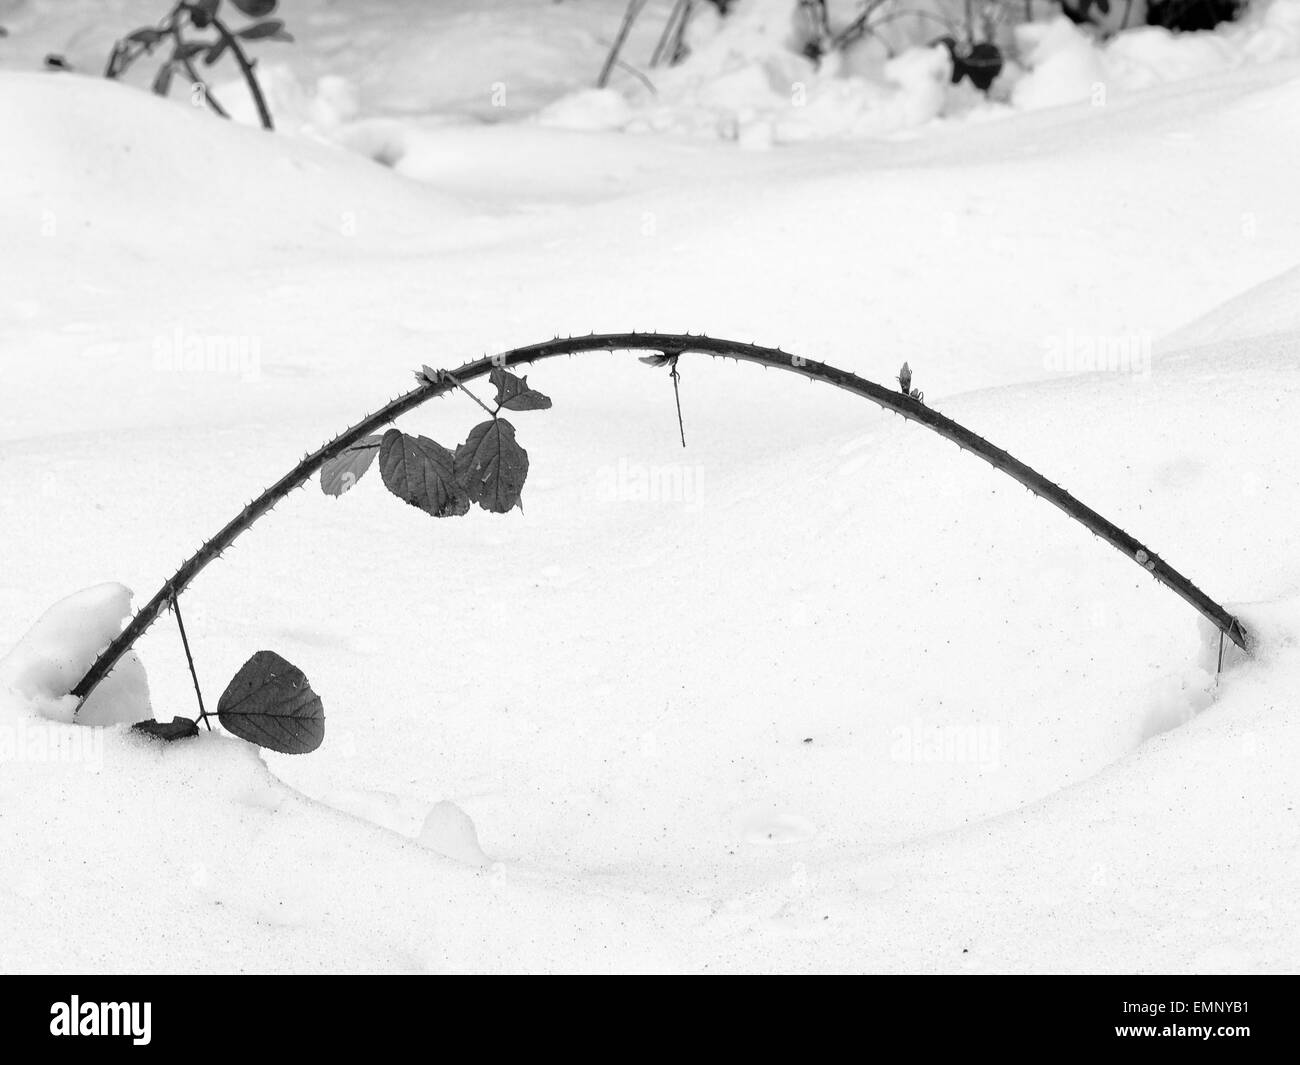 A thorn branch curved by the weight of a snow fall - Stock Image